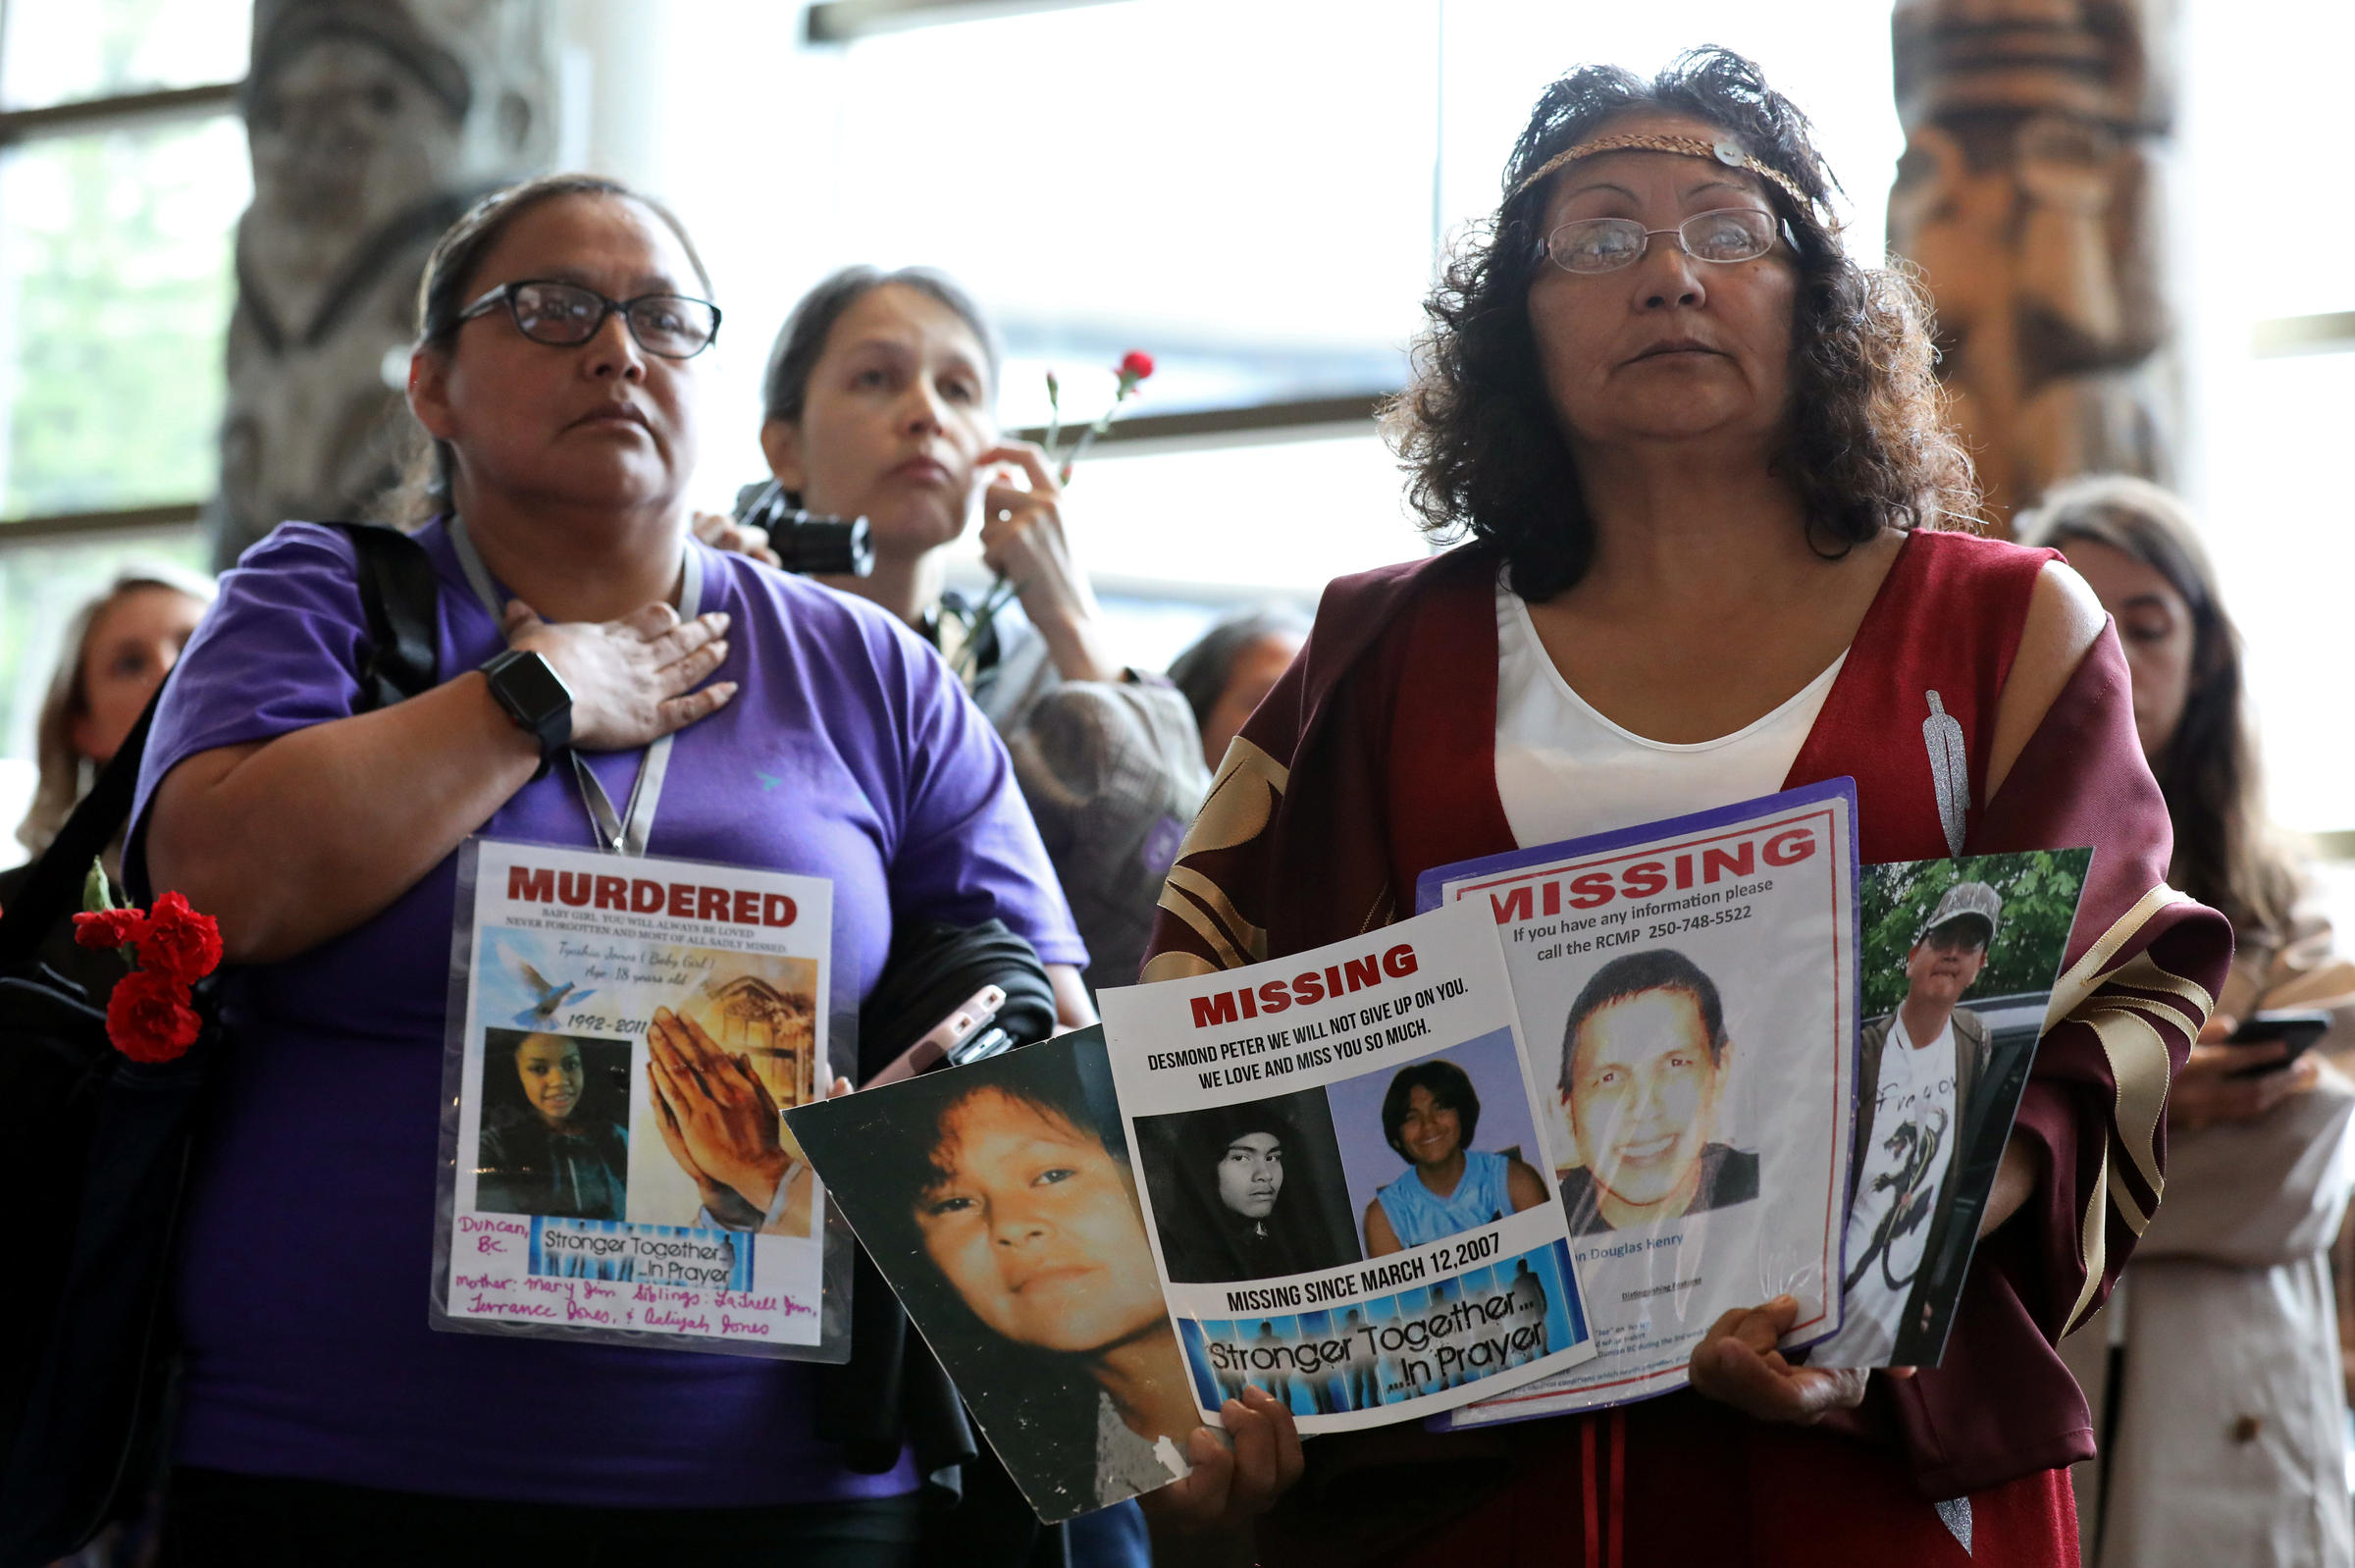 Genocide' Has Been Committed Against Indigenous Women And Girls